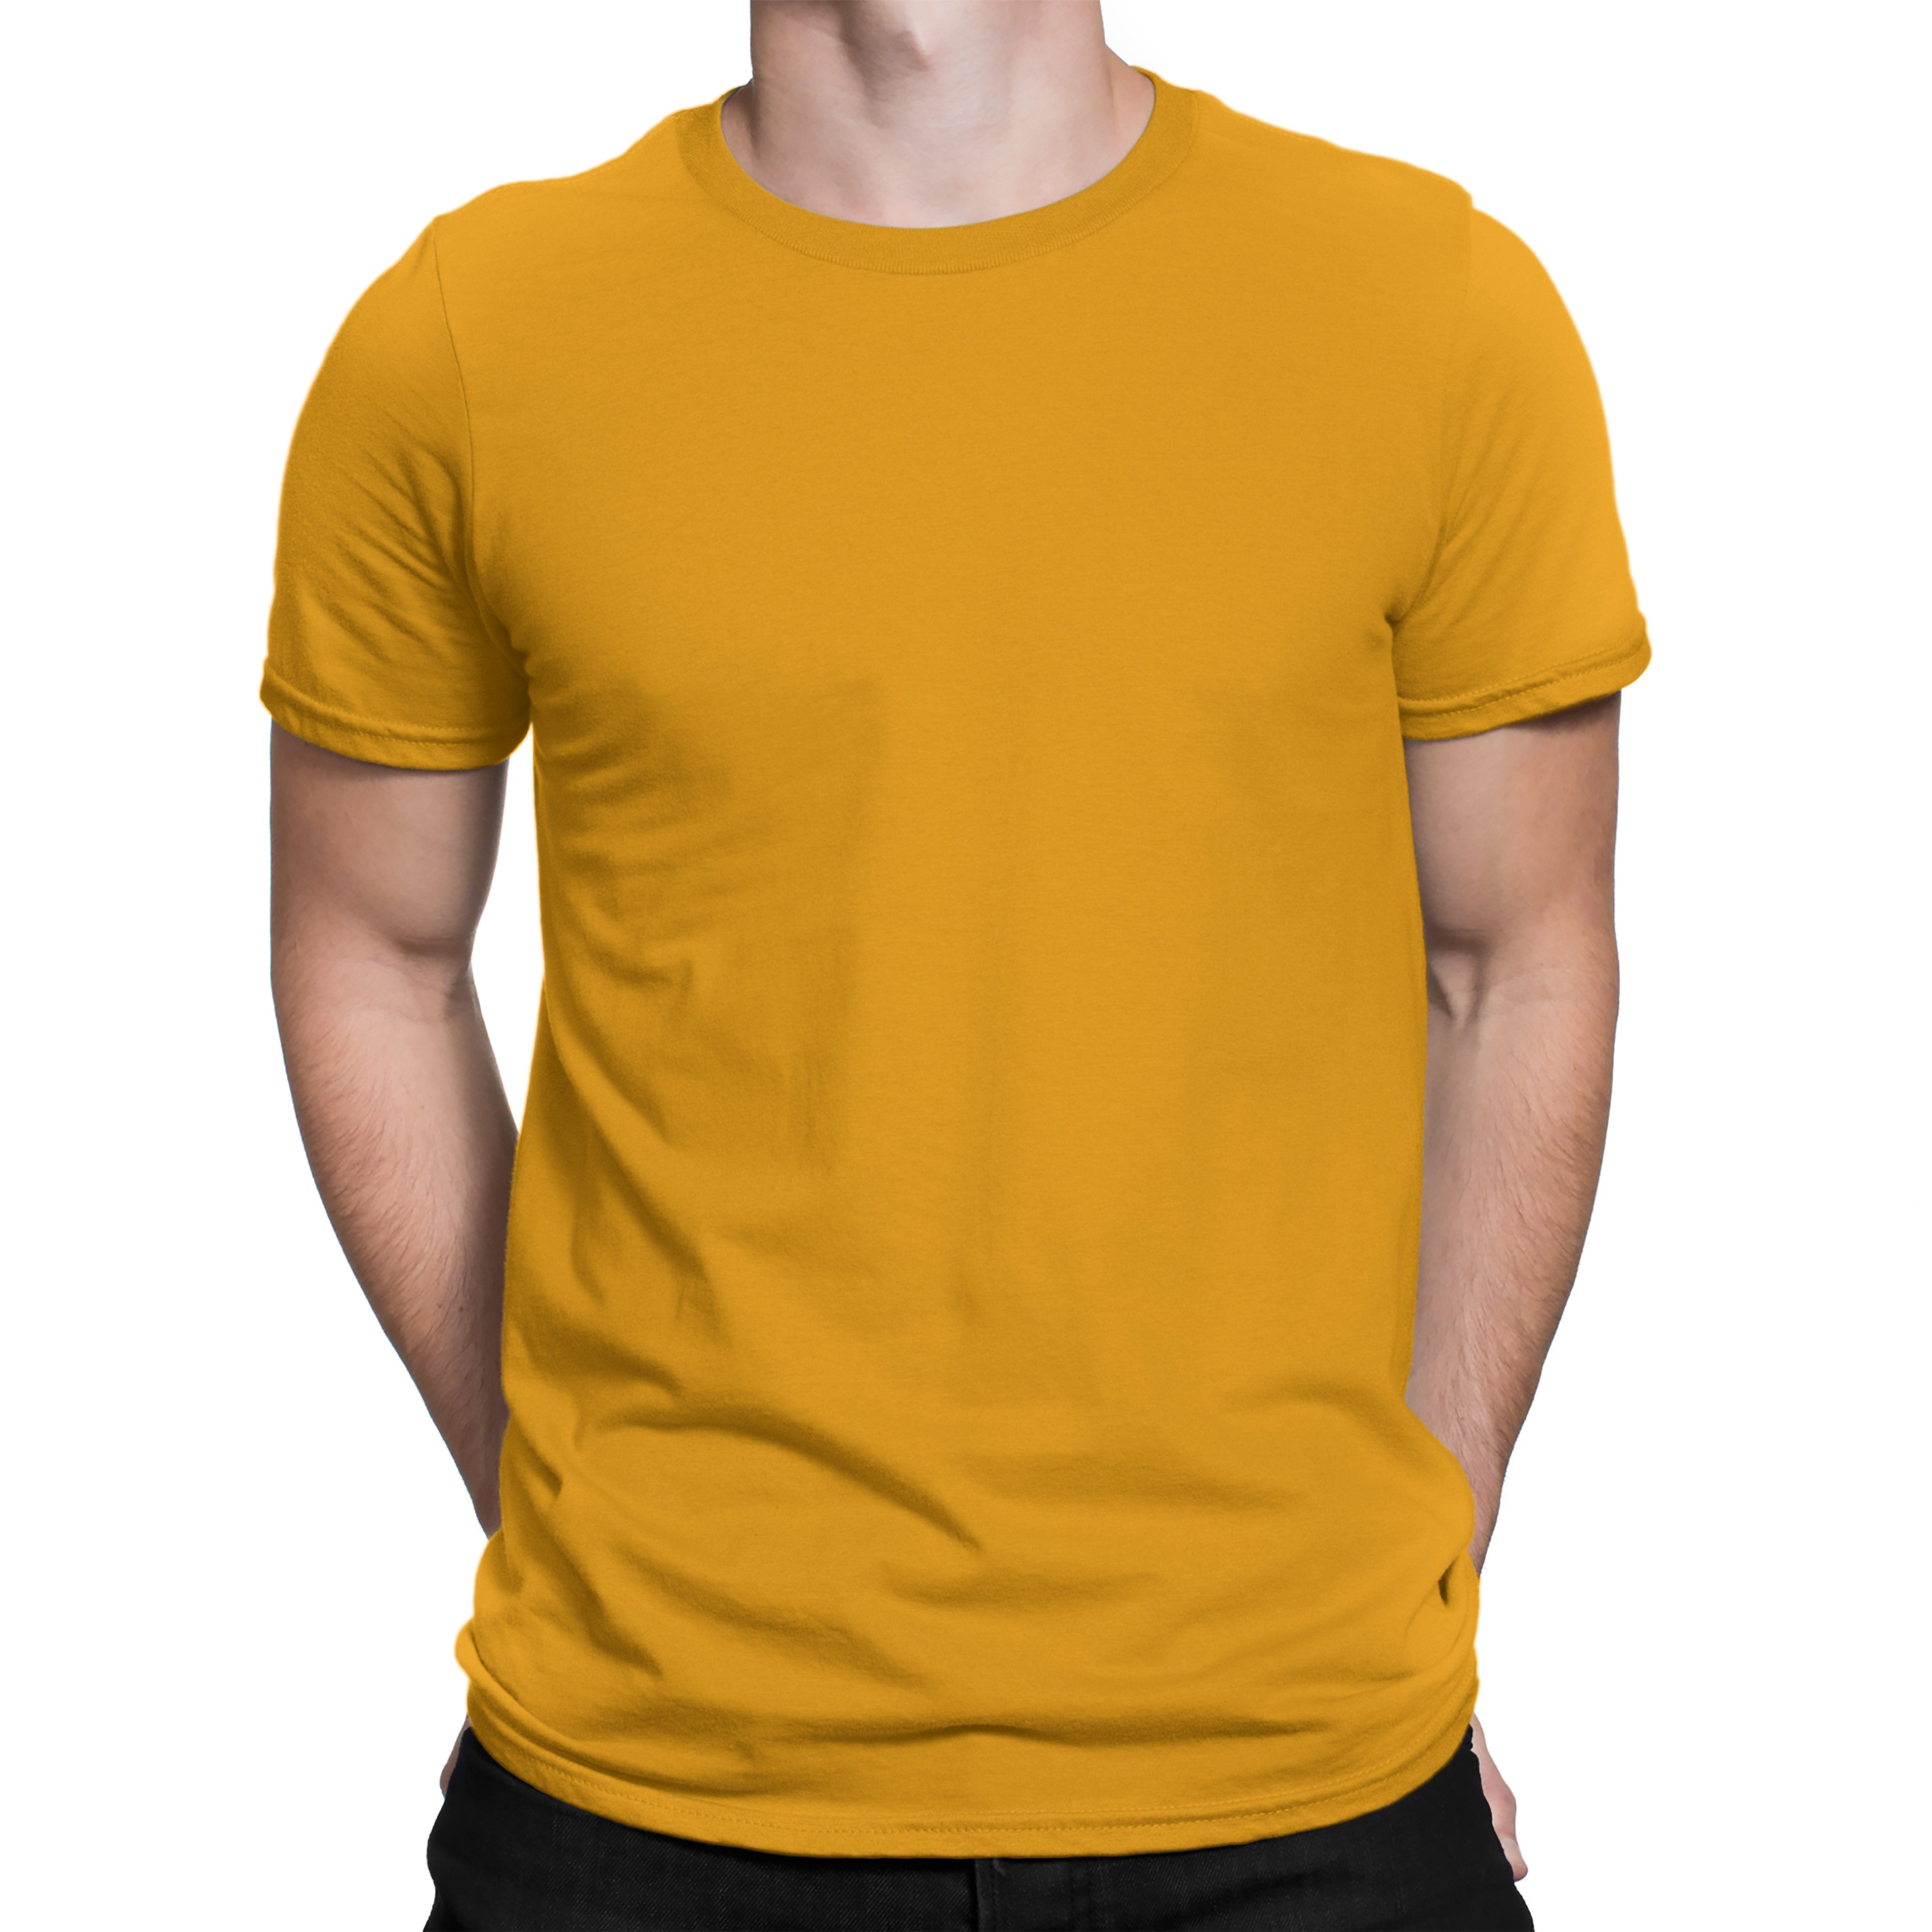 Men's Basic Yellow T-Shirt by Silly Punter in India